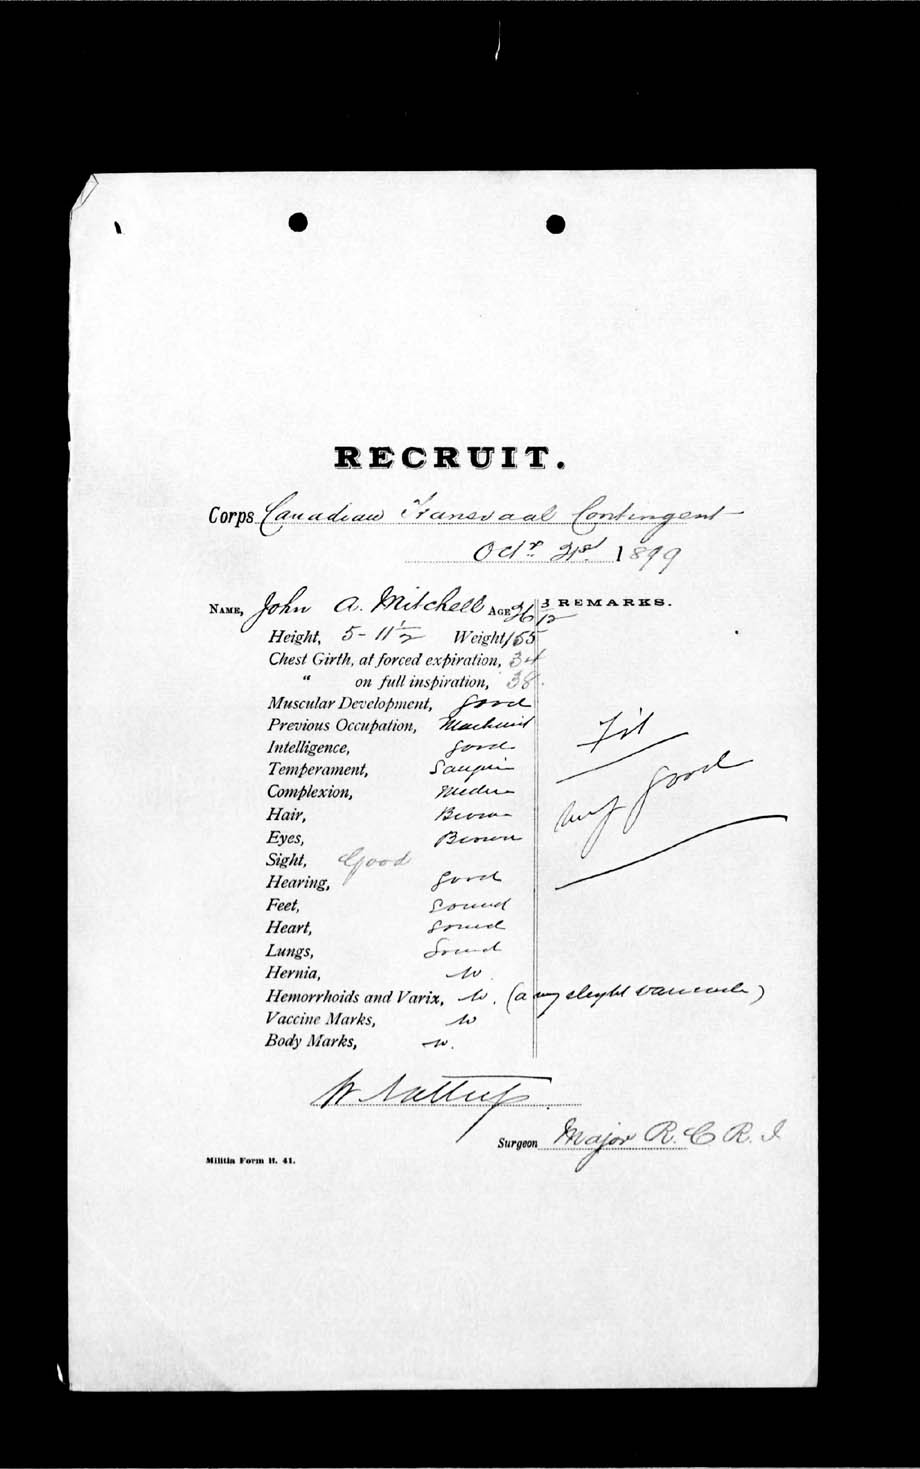 Digitized page of Boer War for Image No.: e002186627